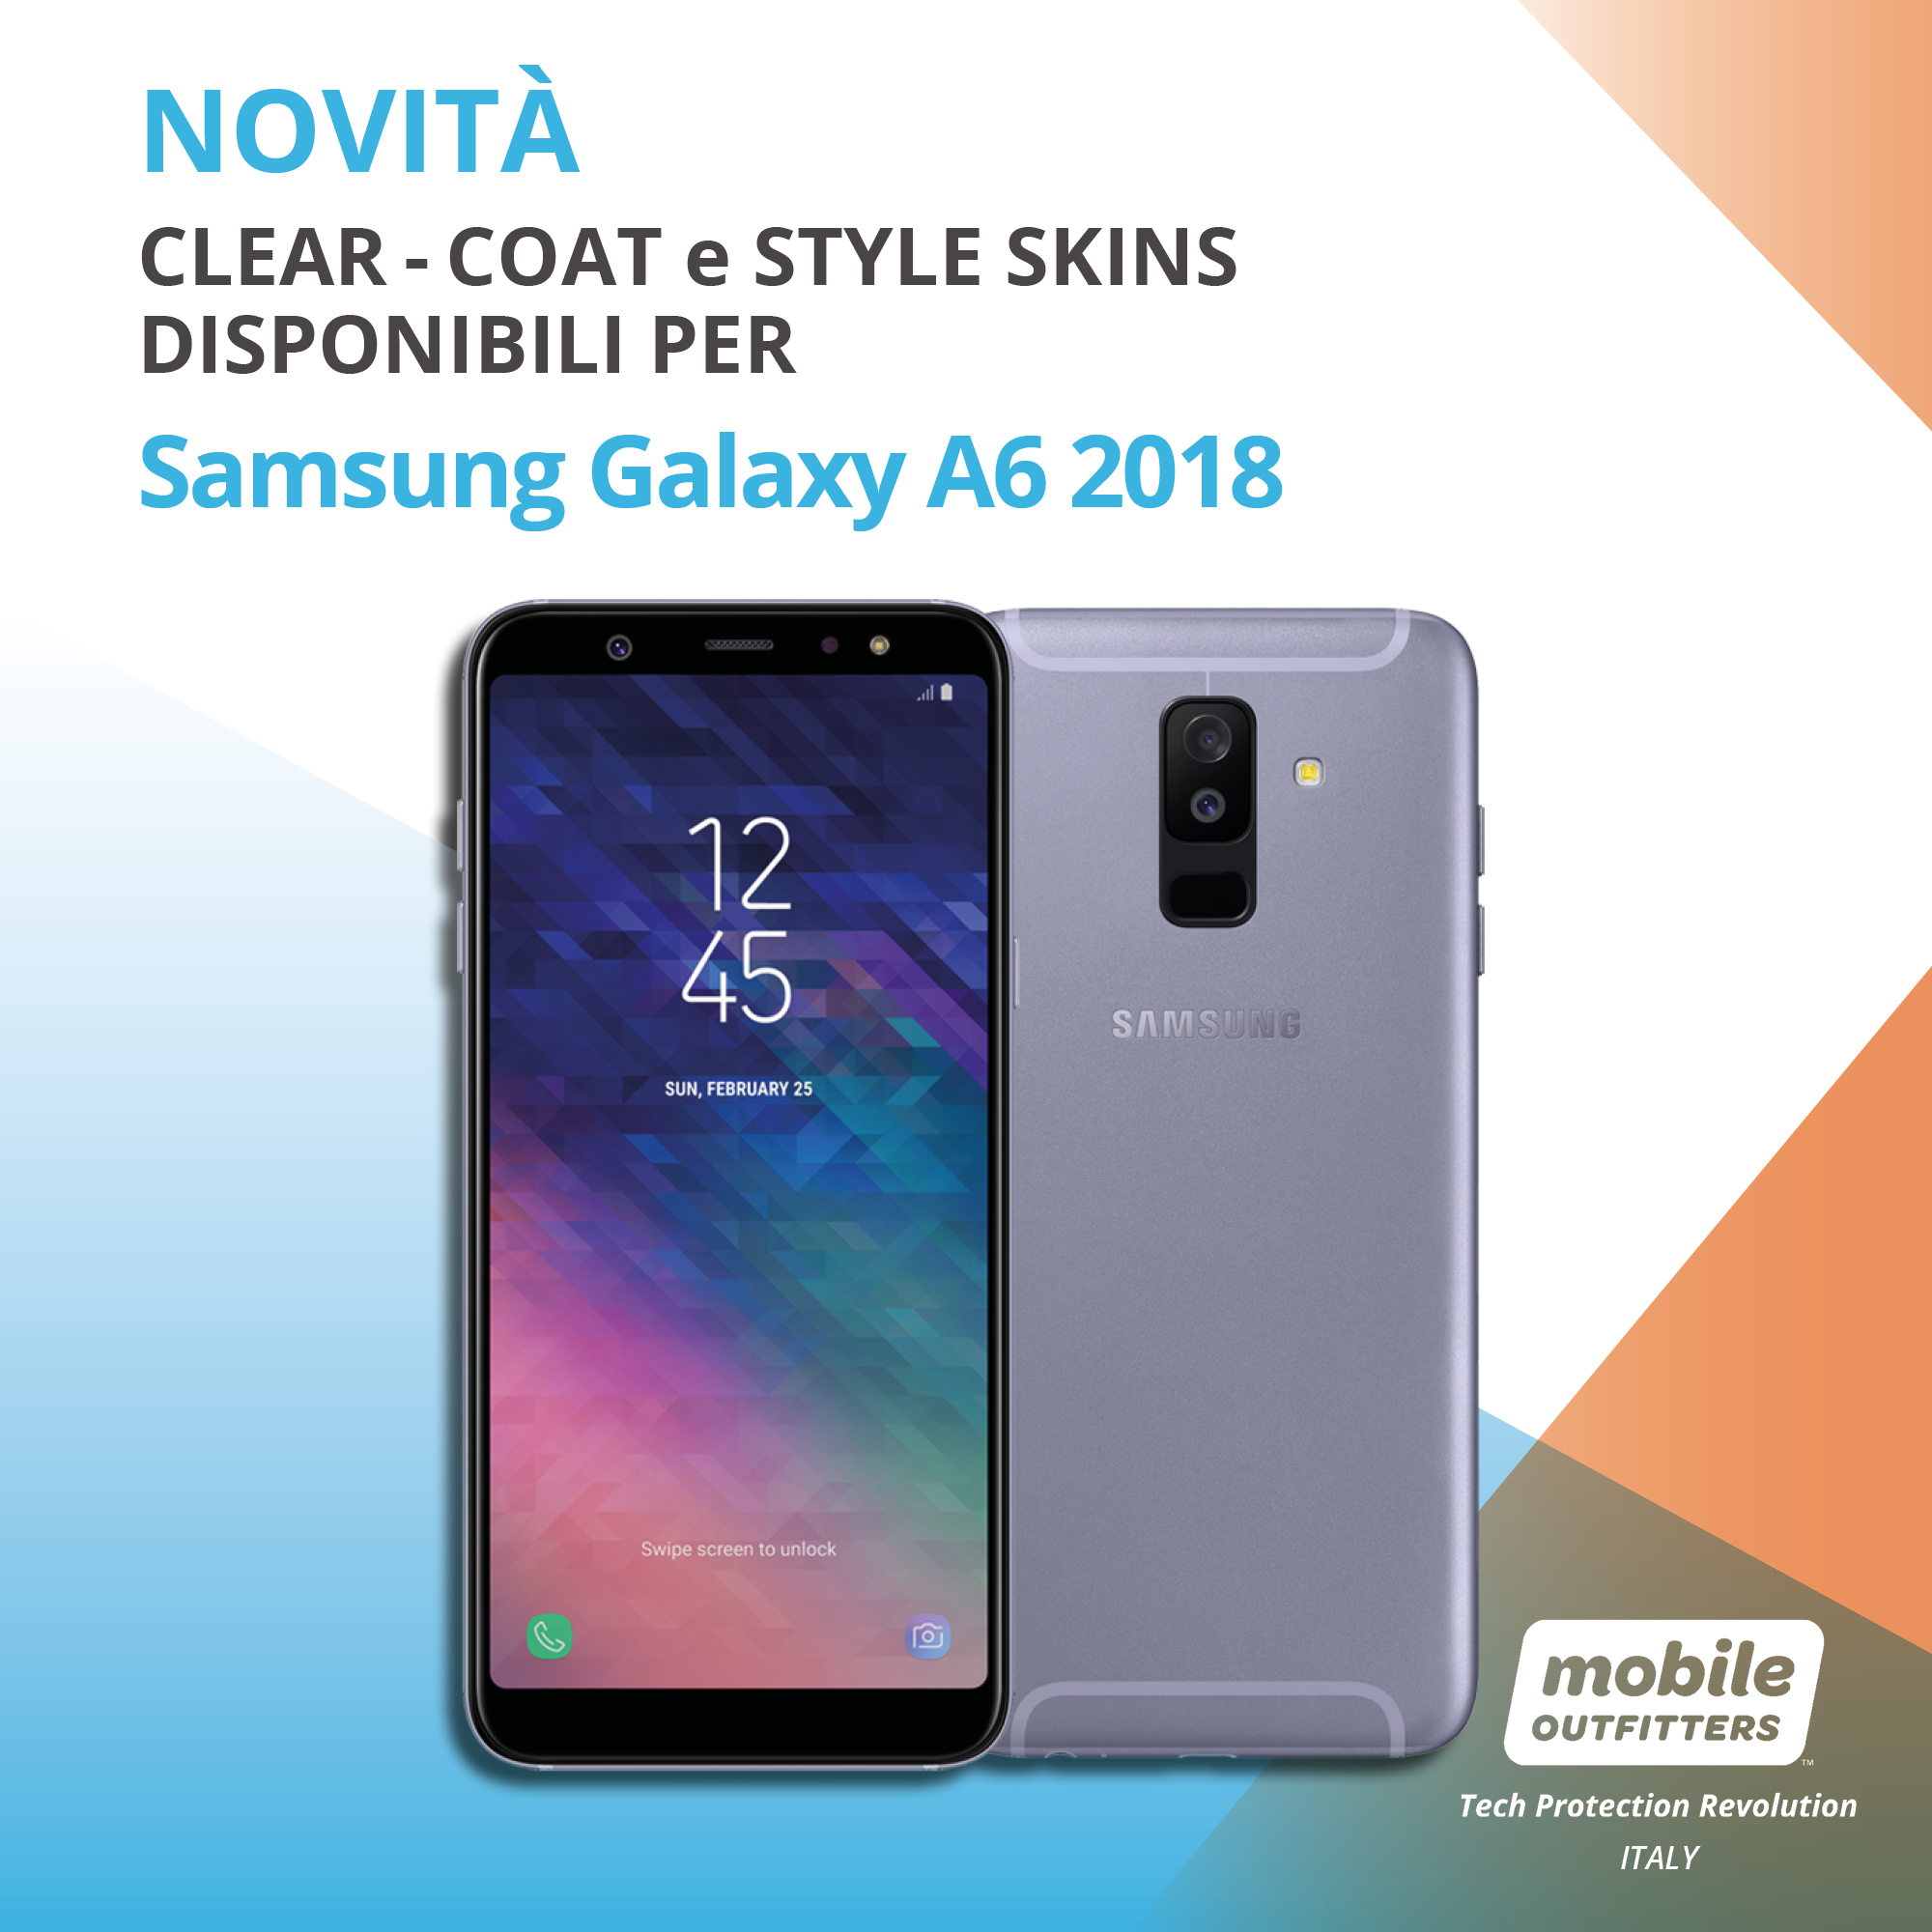 07_06_MOBILE OUTFITTERS_SAMSUNG GALAXY A6 2018